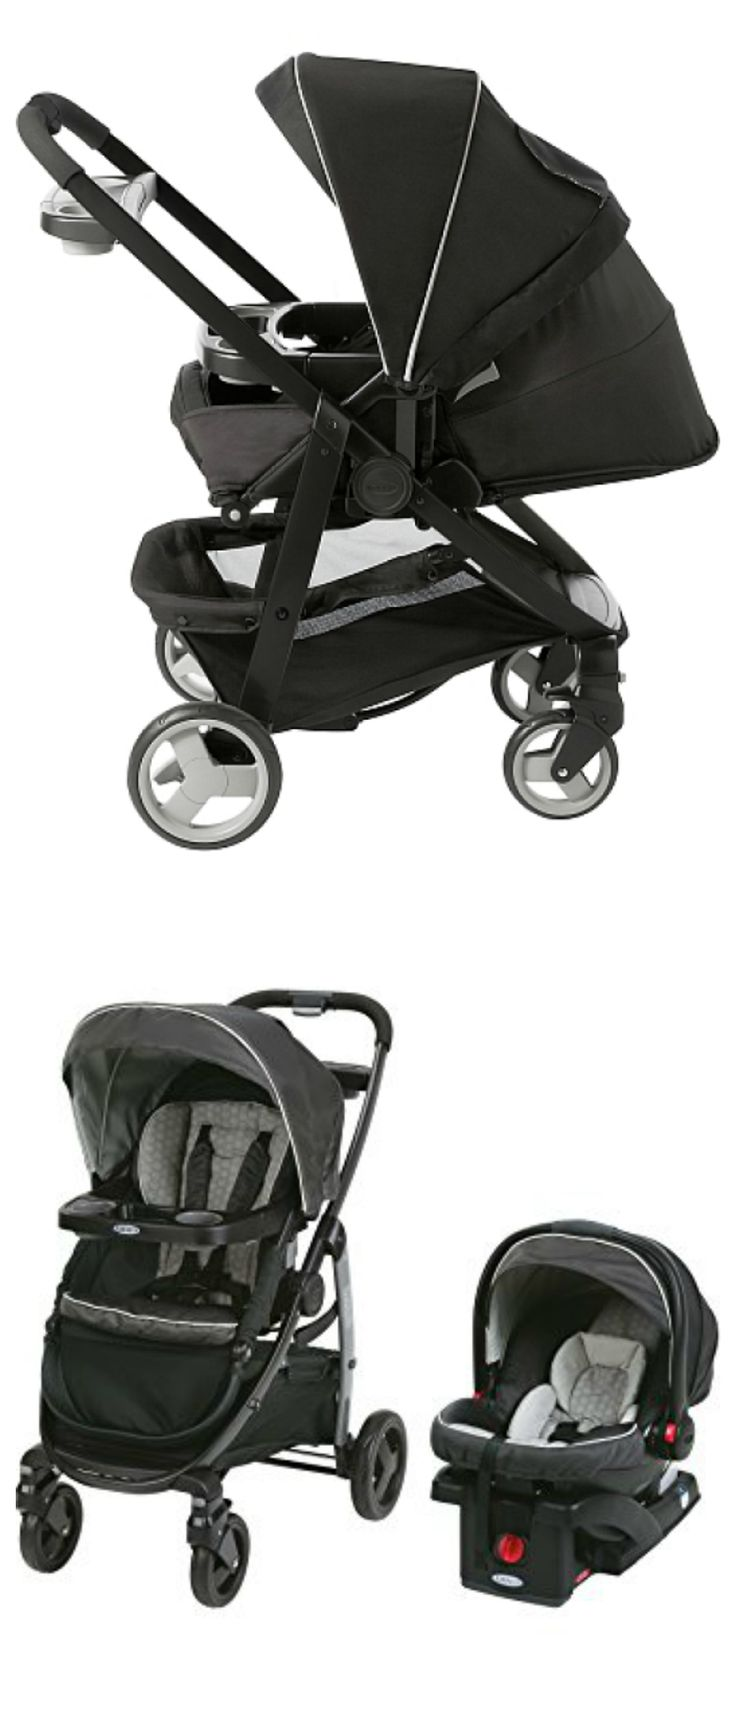 On our list of the best travel systems is the Graco Modes travel system. Why We Love It: The Graco Modes Travel System includes the Graco top-rated Snug Ride Click Connect 35 infant car seat providing 10 versatile riding options. The reversible stroller seat allows baby to... Continue Reading